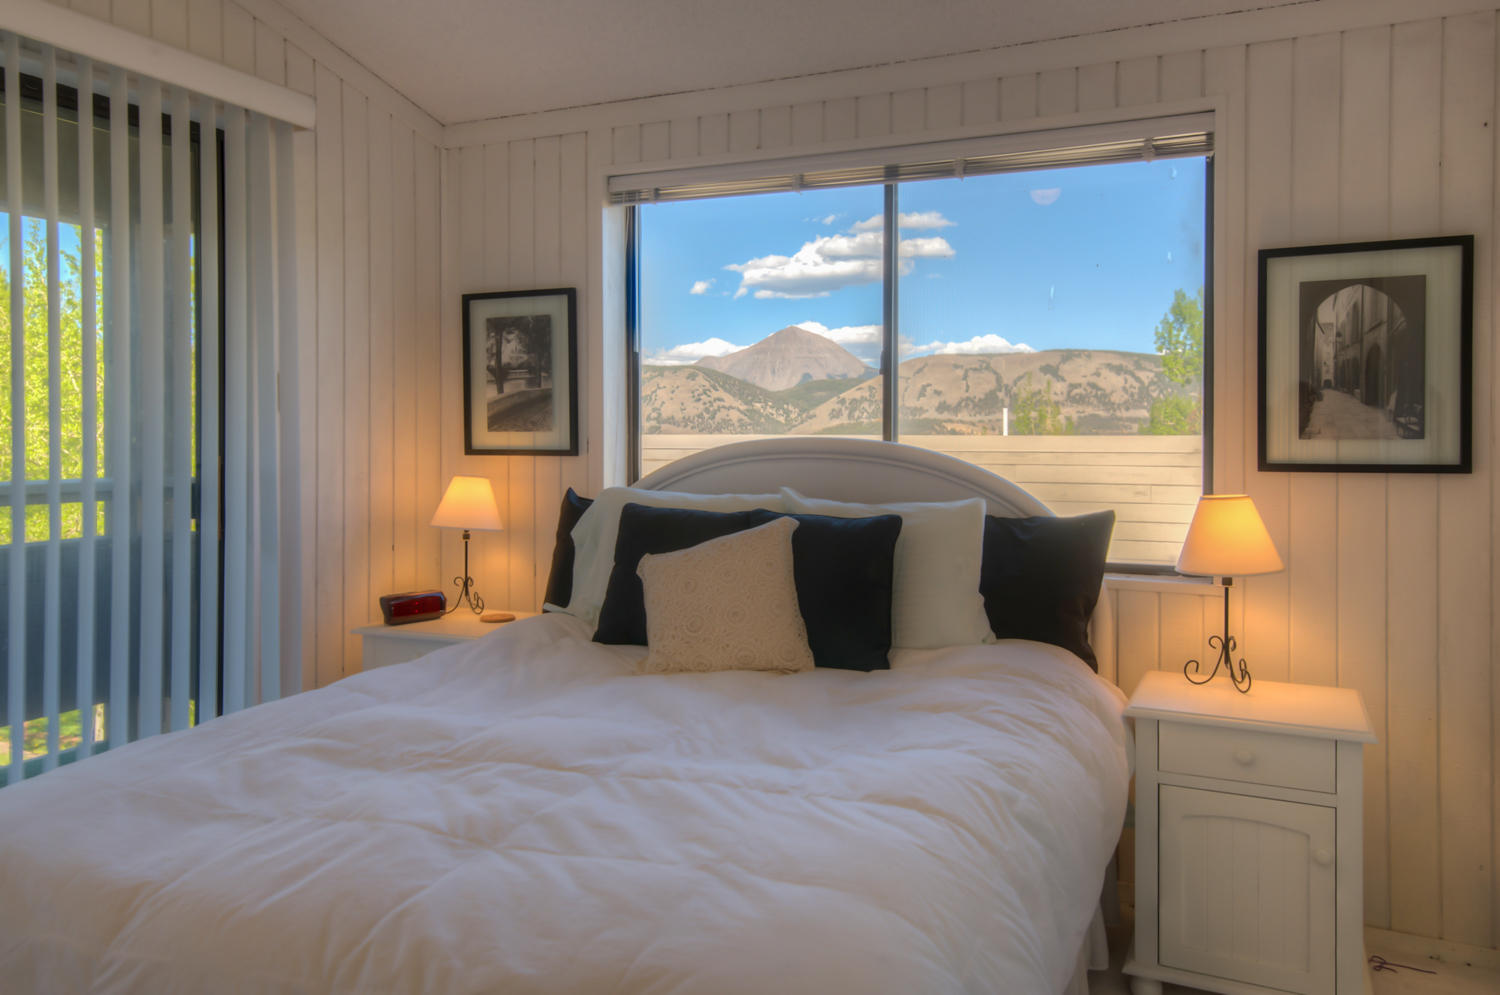 Aspen White Painted Bedroom Diy Upper Level Aspen Leaf Condo Unit 46 Has Spectacular Views And Great Parking This Condo Has Brand New Floorings And Fresh White Paint Throughout Etsy Search Tlc Real Estate Inc